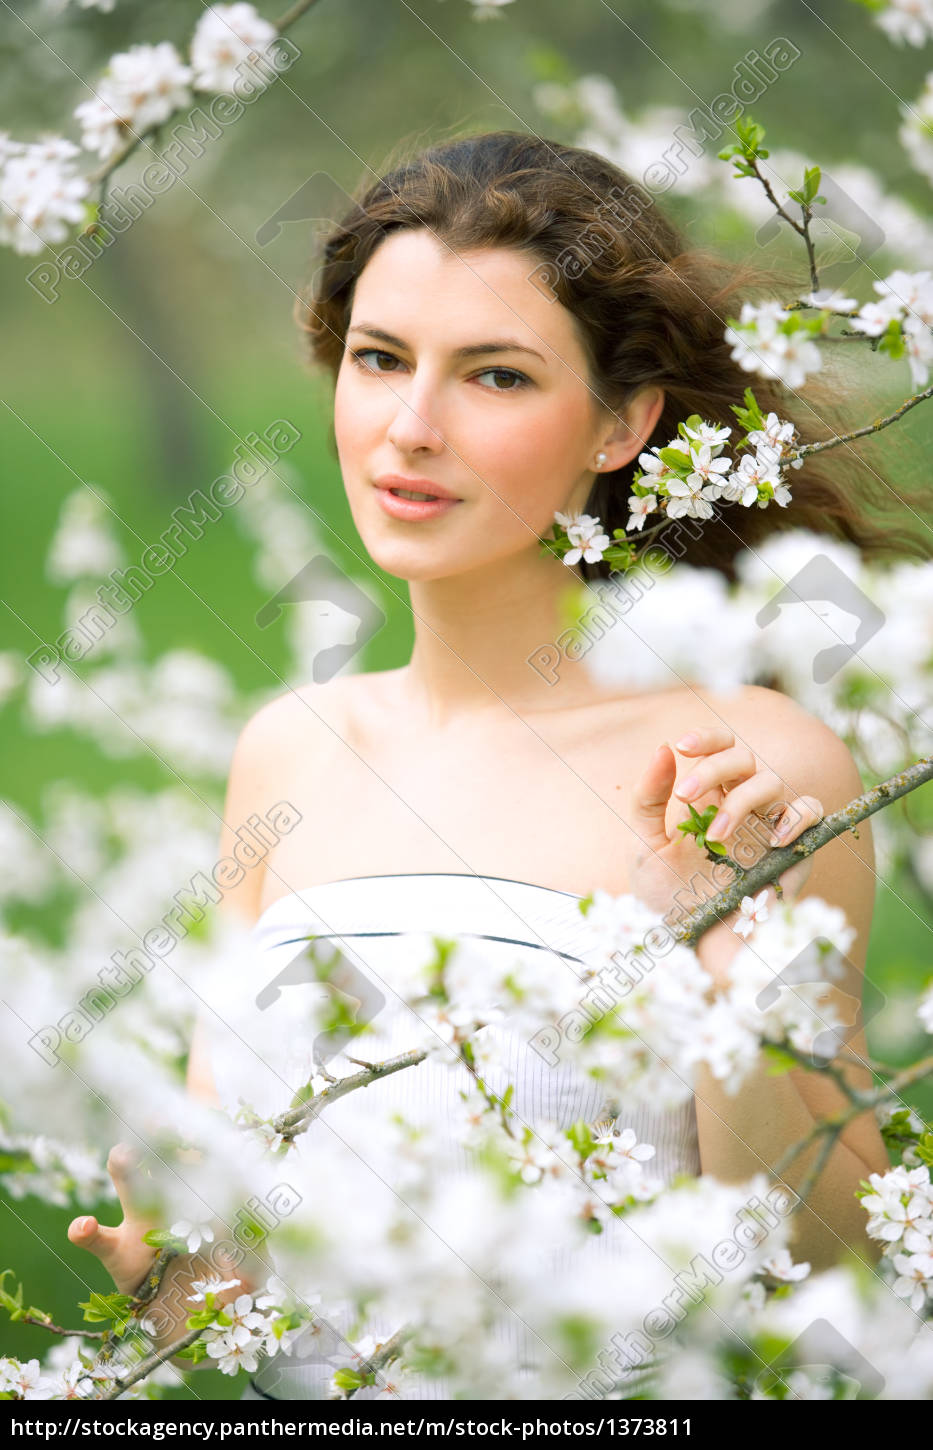 spring, beauty - 1373811